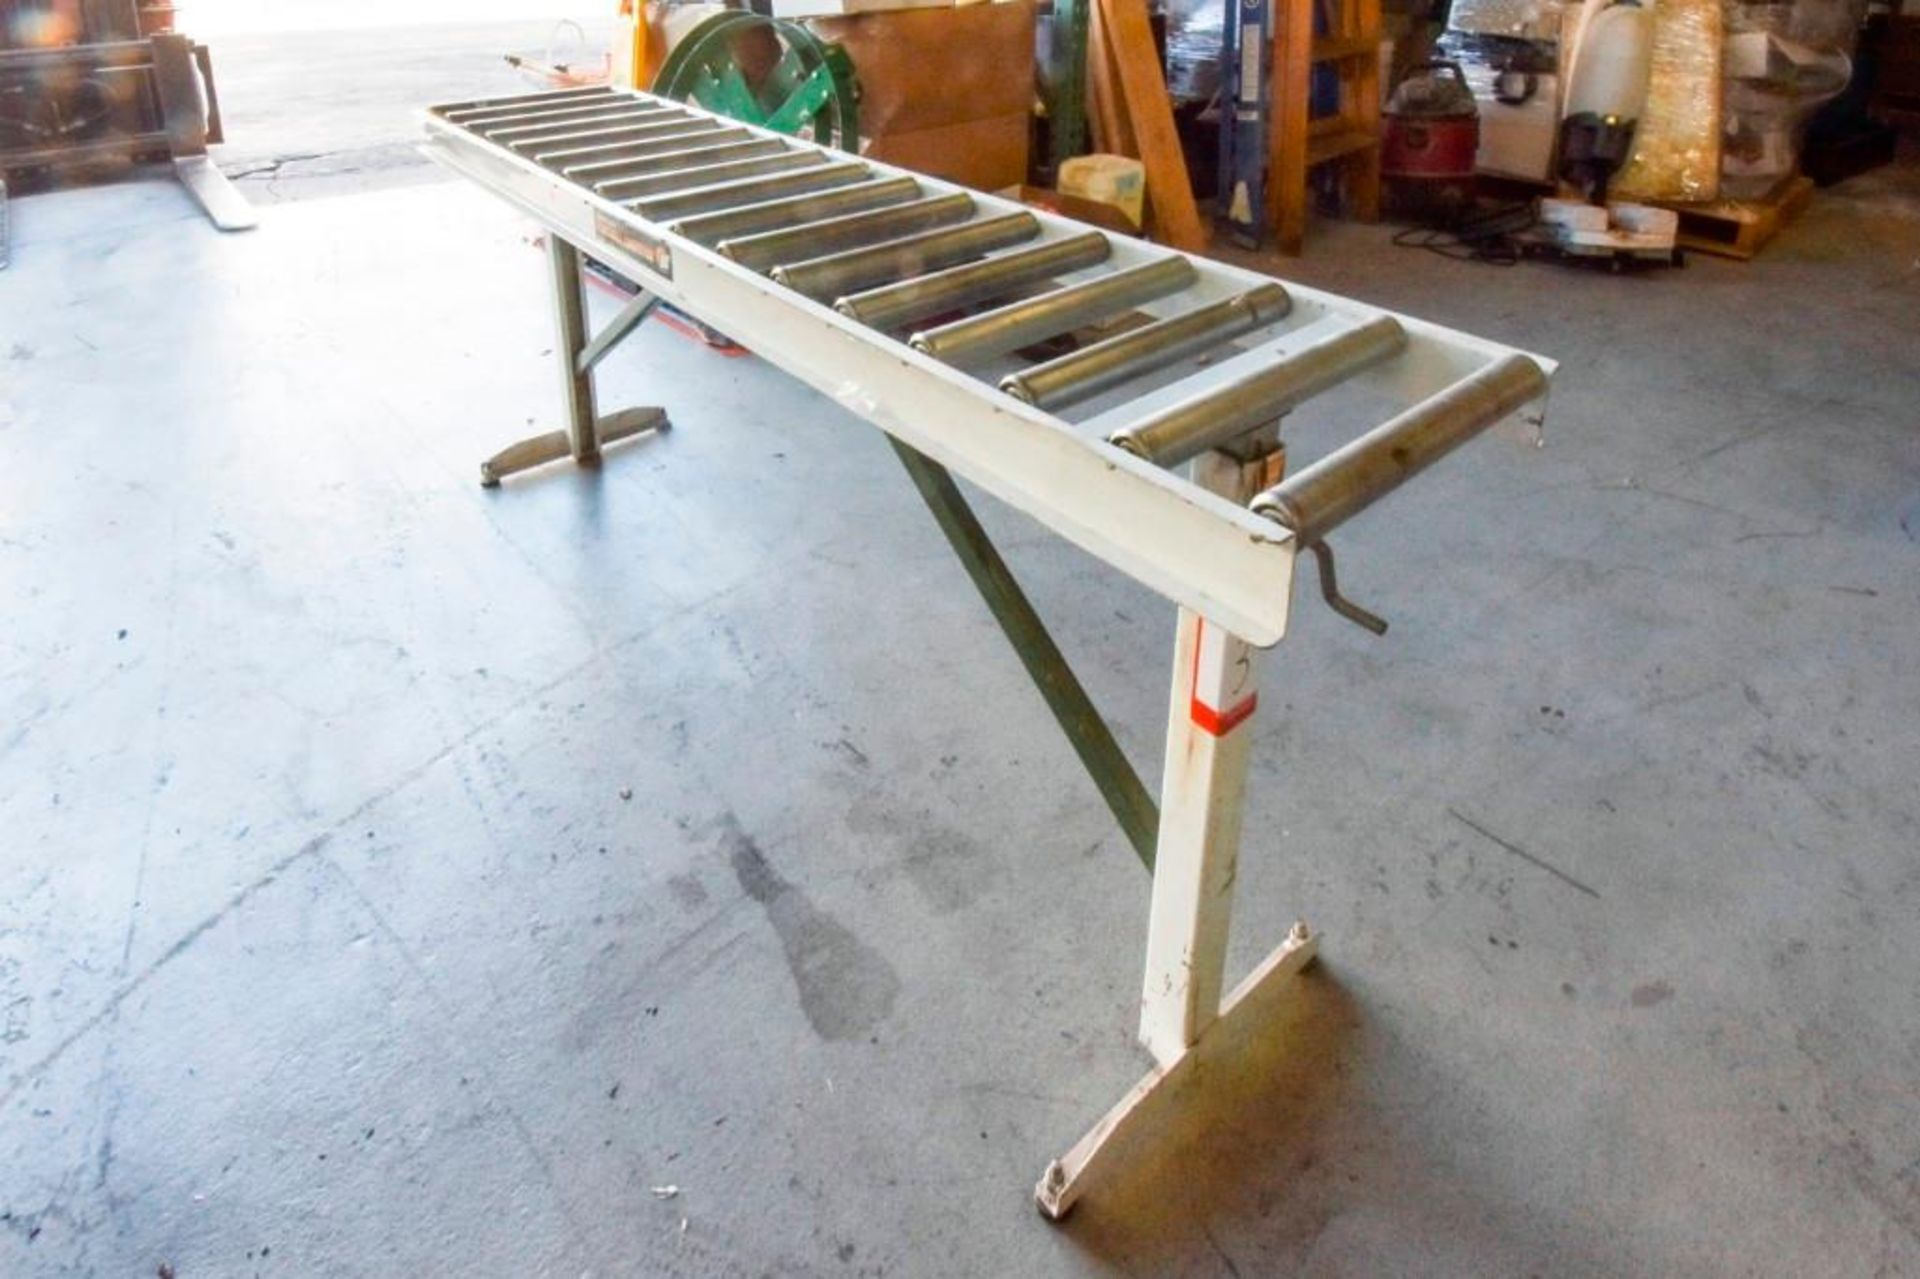 Super Duty Portable Folding Roller Conveyor 5'7'' - Image 5 of 11